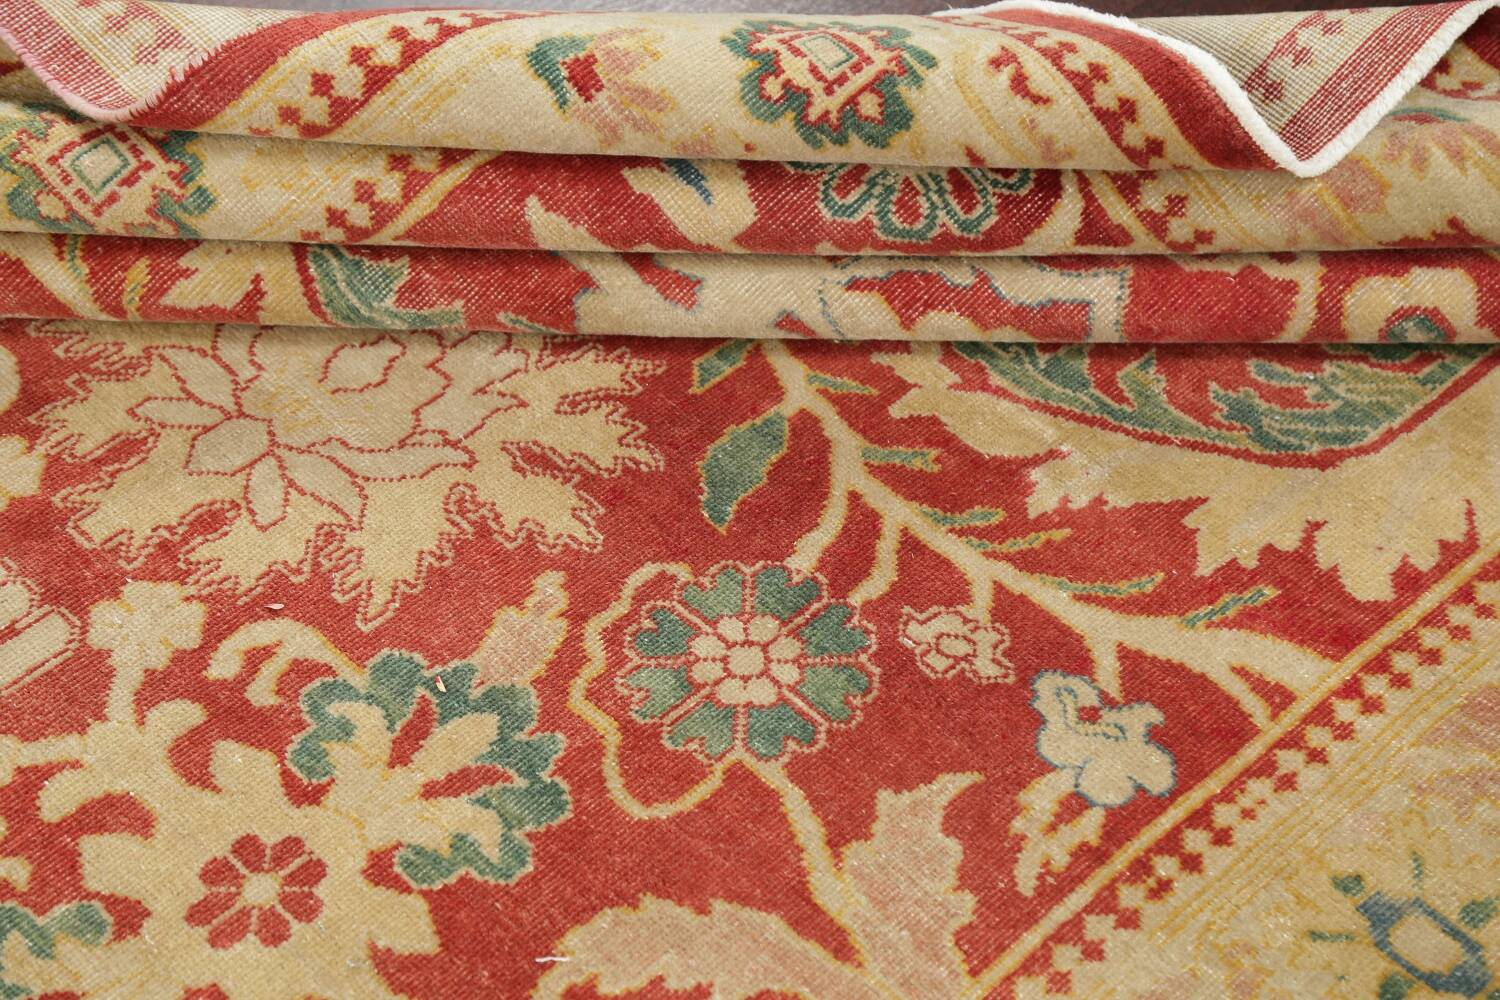 Floral Red Oushak Egyptian Area Rug 6x9 image 17